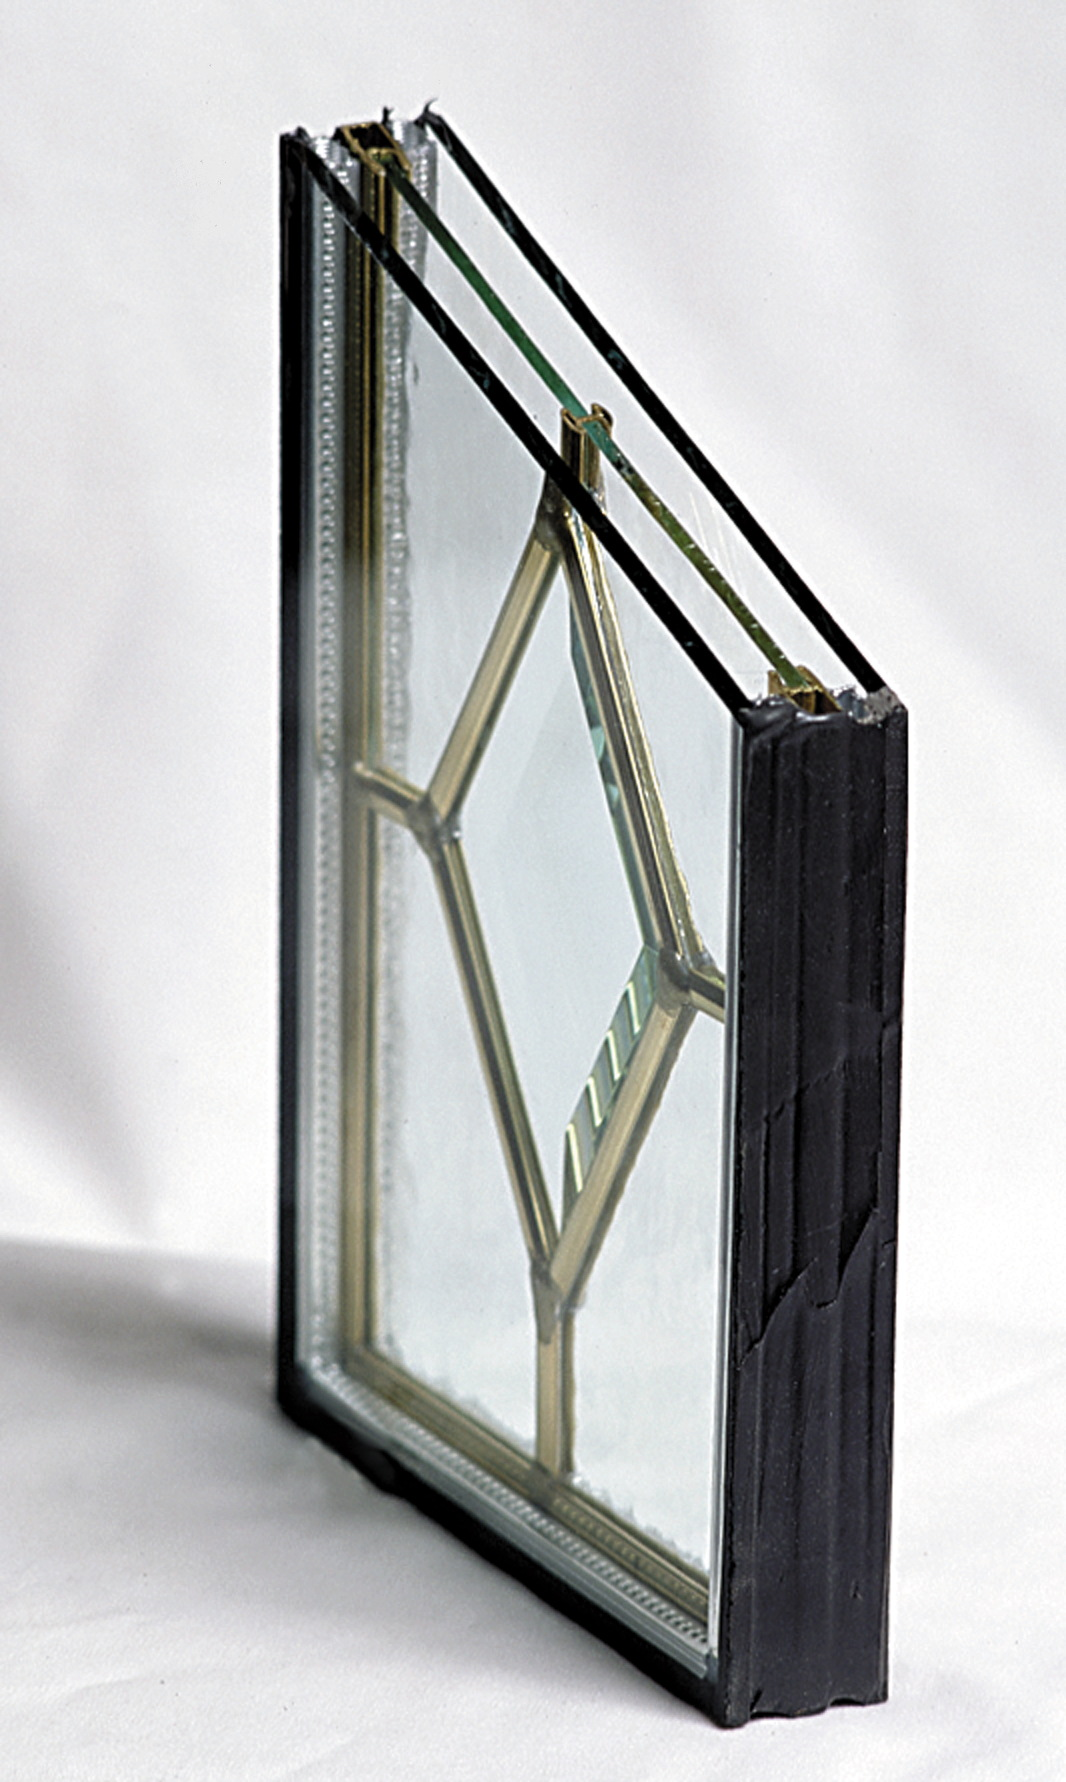 ... of an efficient triple-pane decorative glass panel. Notice how the center decorative panel is protected on both sides. - Photo credit - Madawaska Doors & Dulley Column - Color graphics